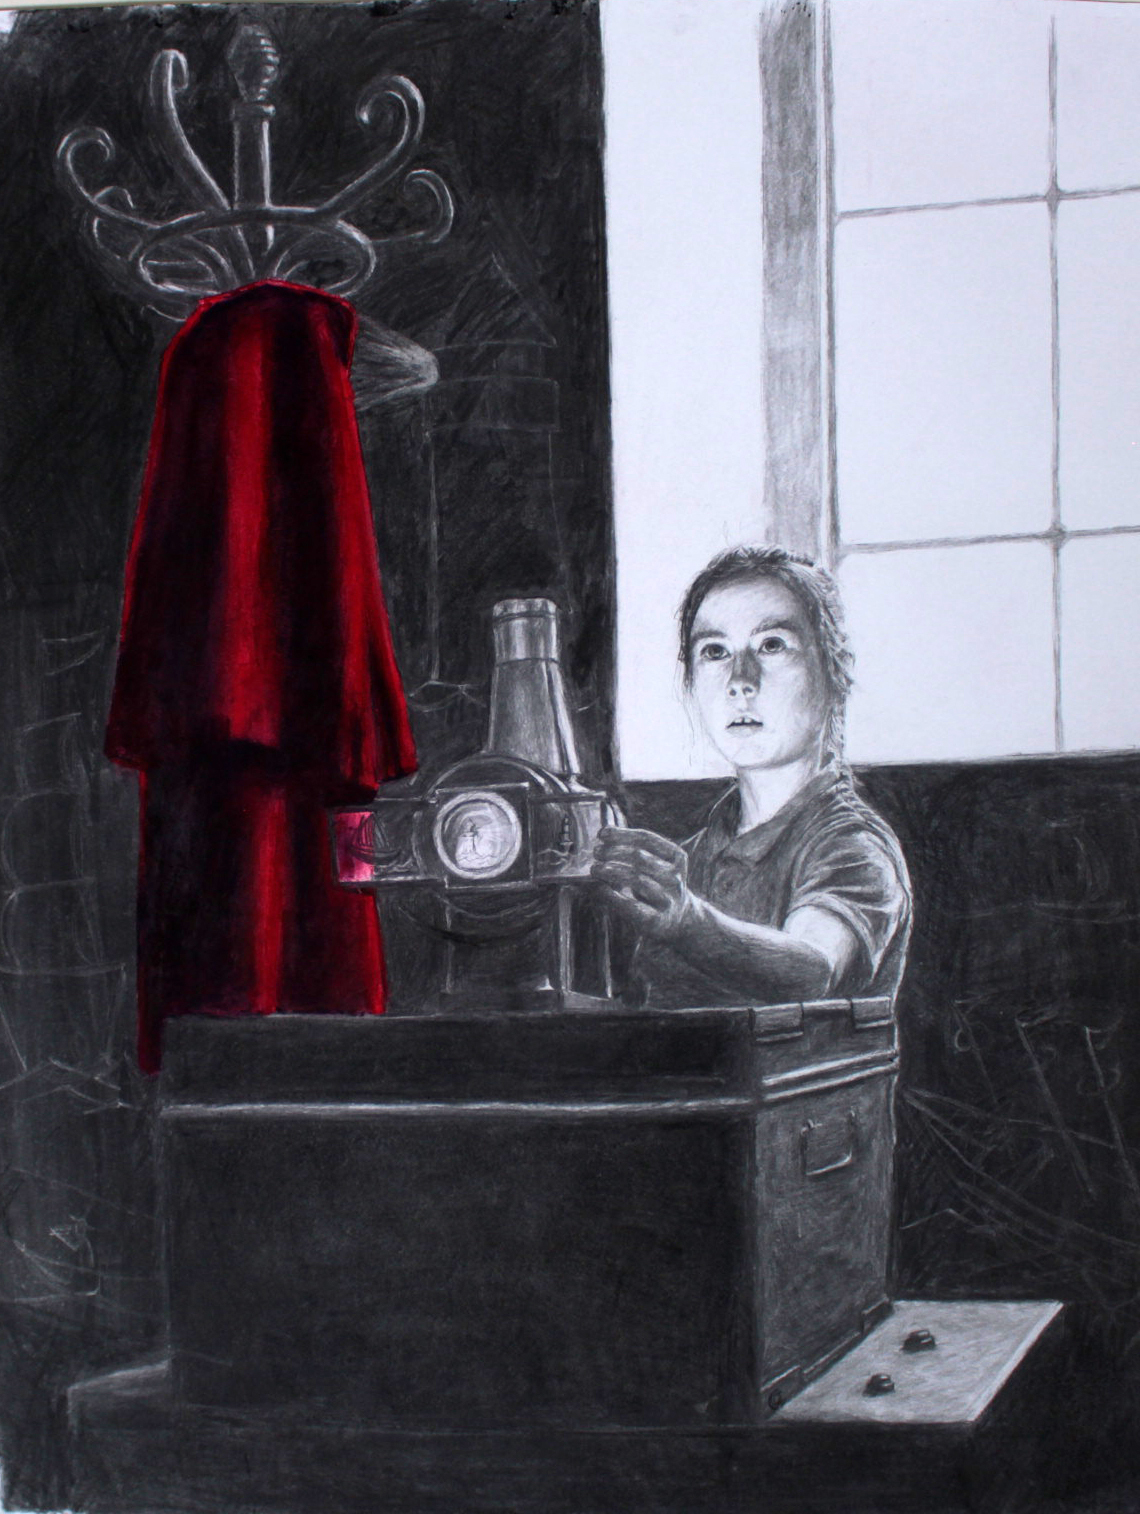 Charcoal and red chalk drawing of girl with magic lantern and red cloak